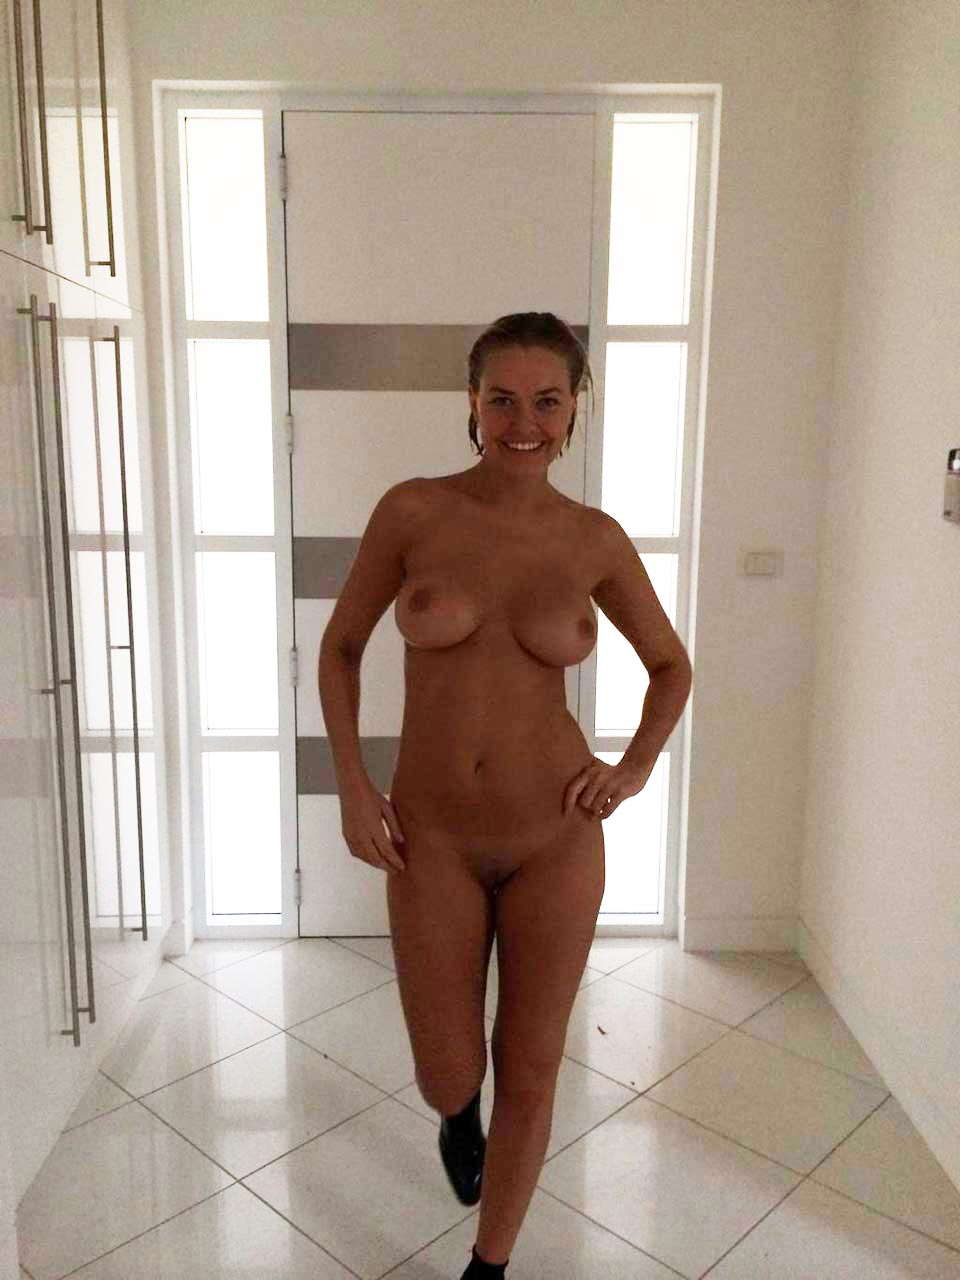 Naked Images Free position pregnancy sex